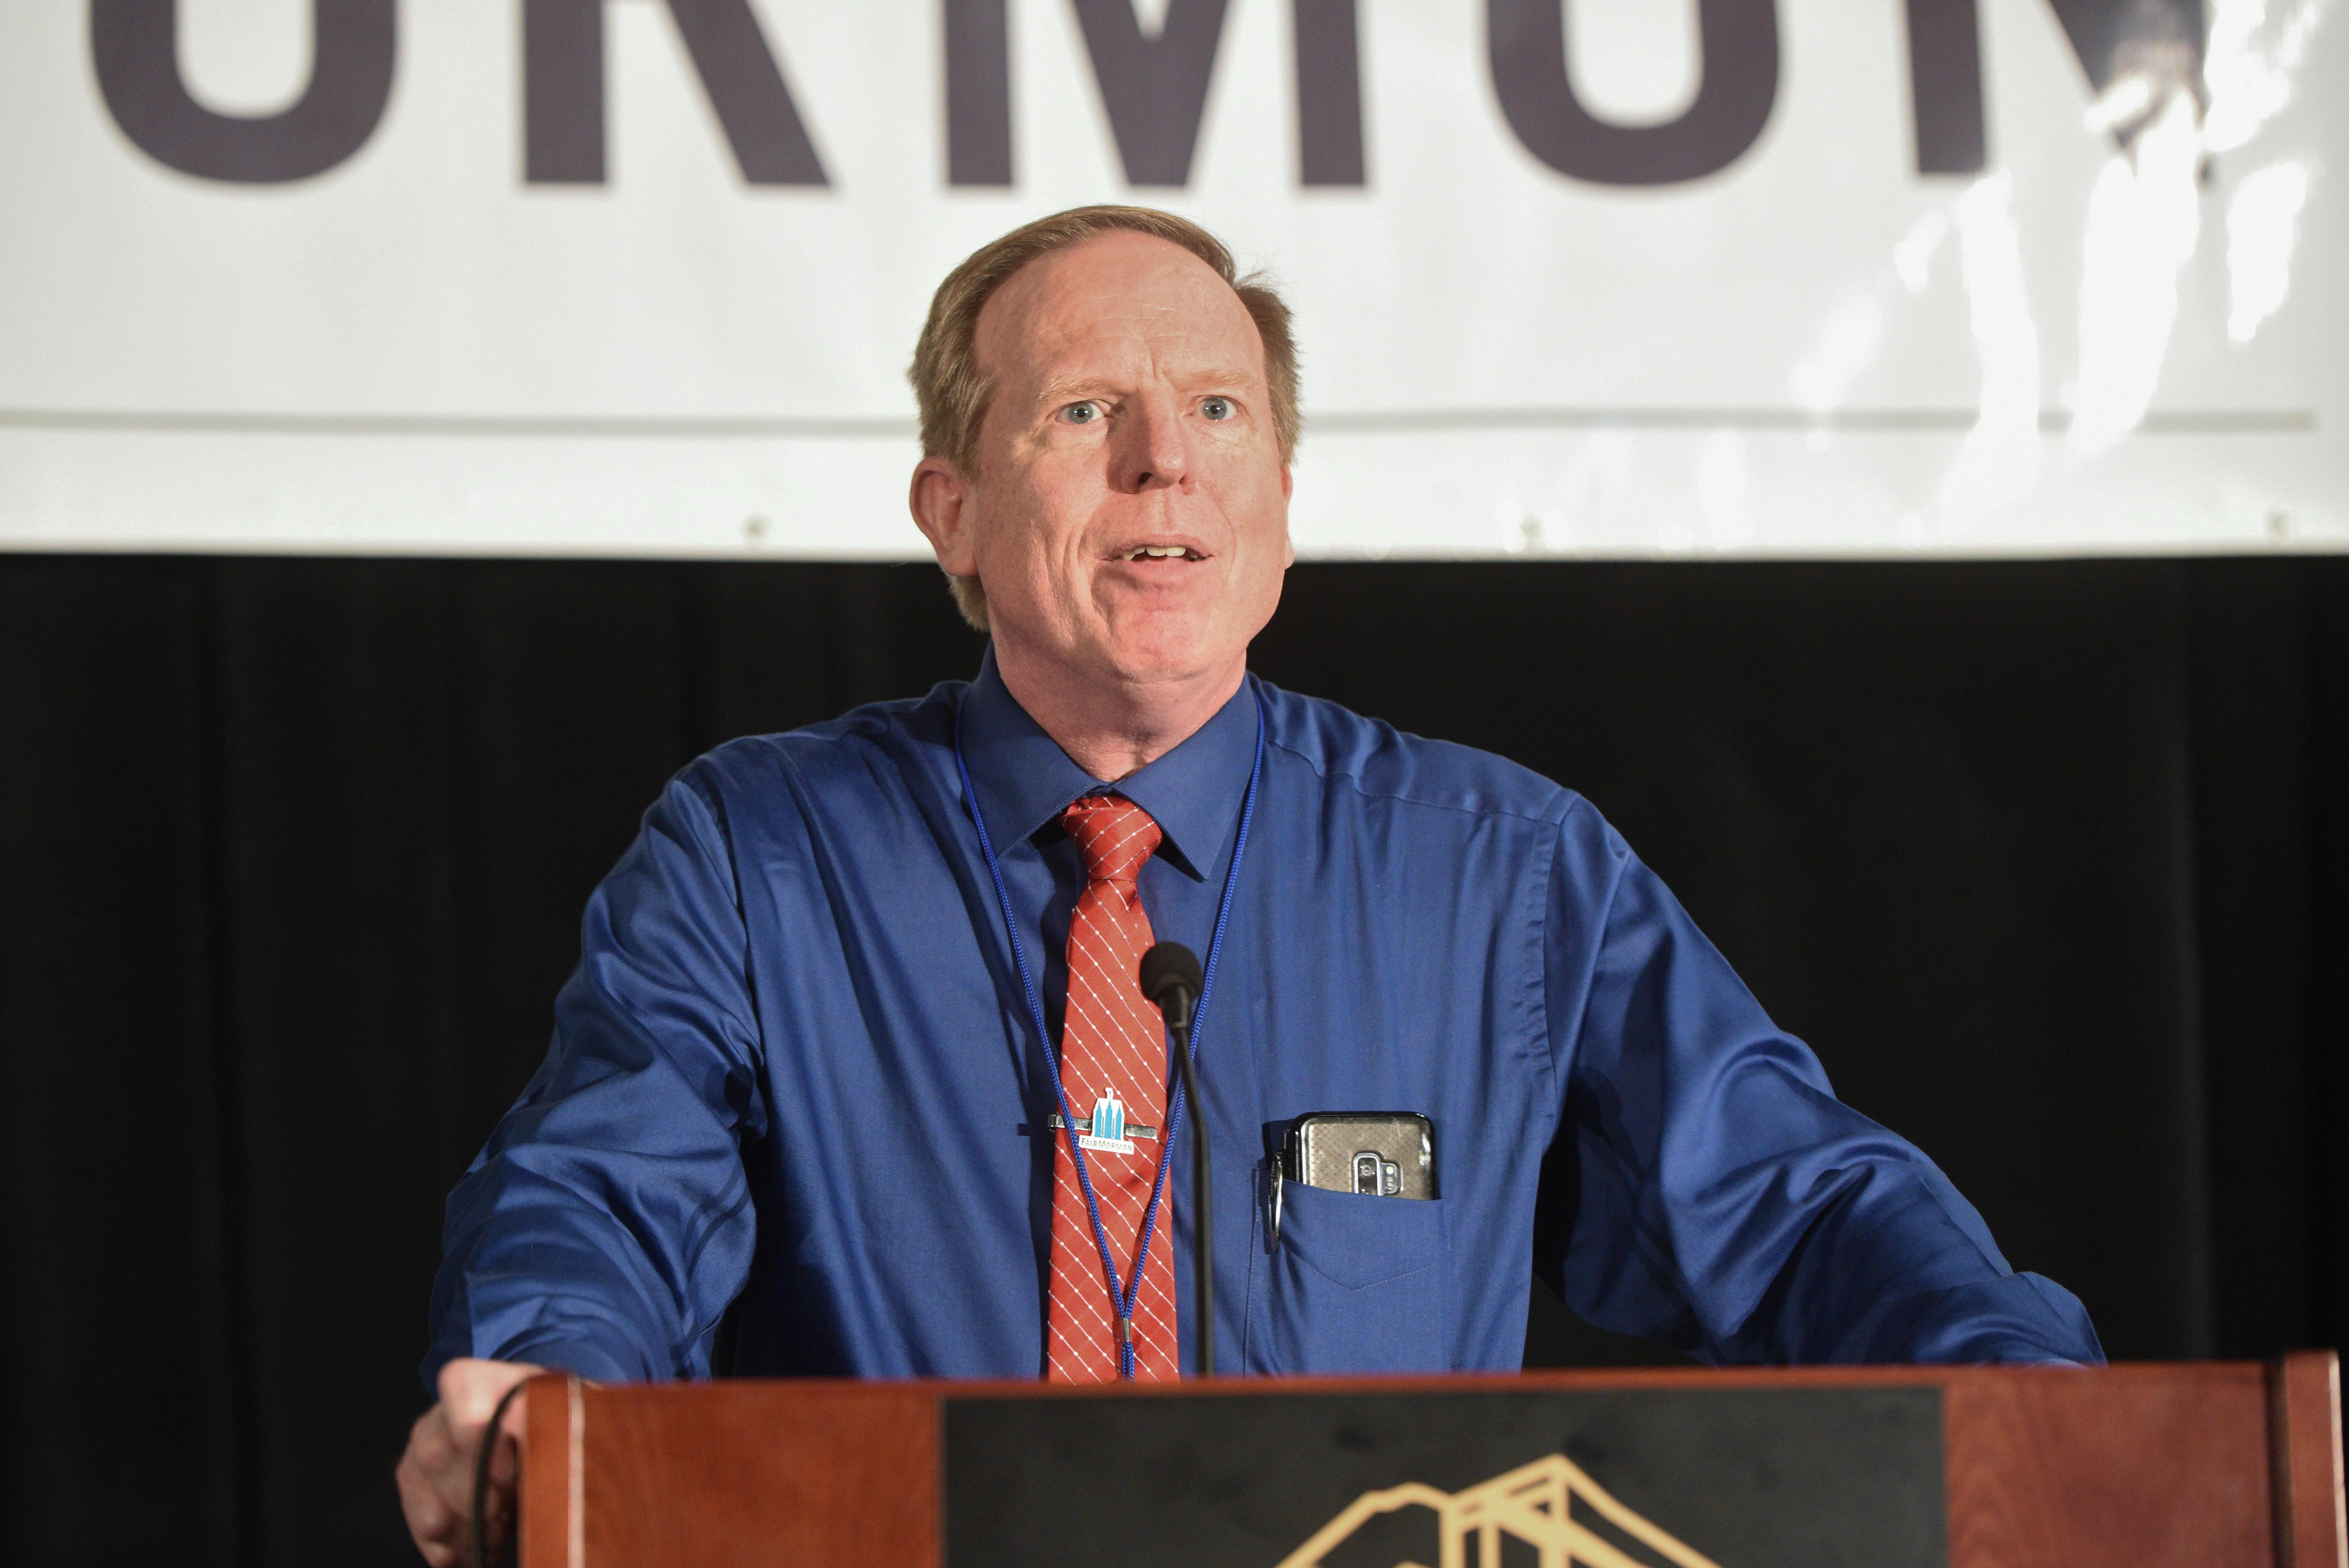 Scott Gordon, president of FairMormon, speaks during the FairMormon conference on Friday, Aug. 9, 2019 at the Utah Valley Convention Center in Provo, Utah.